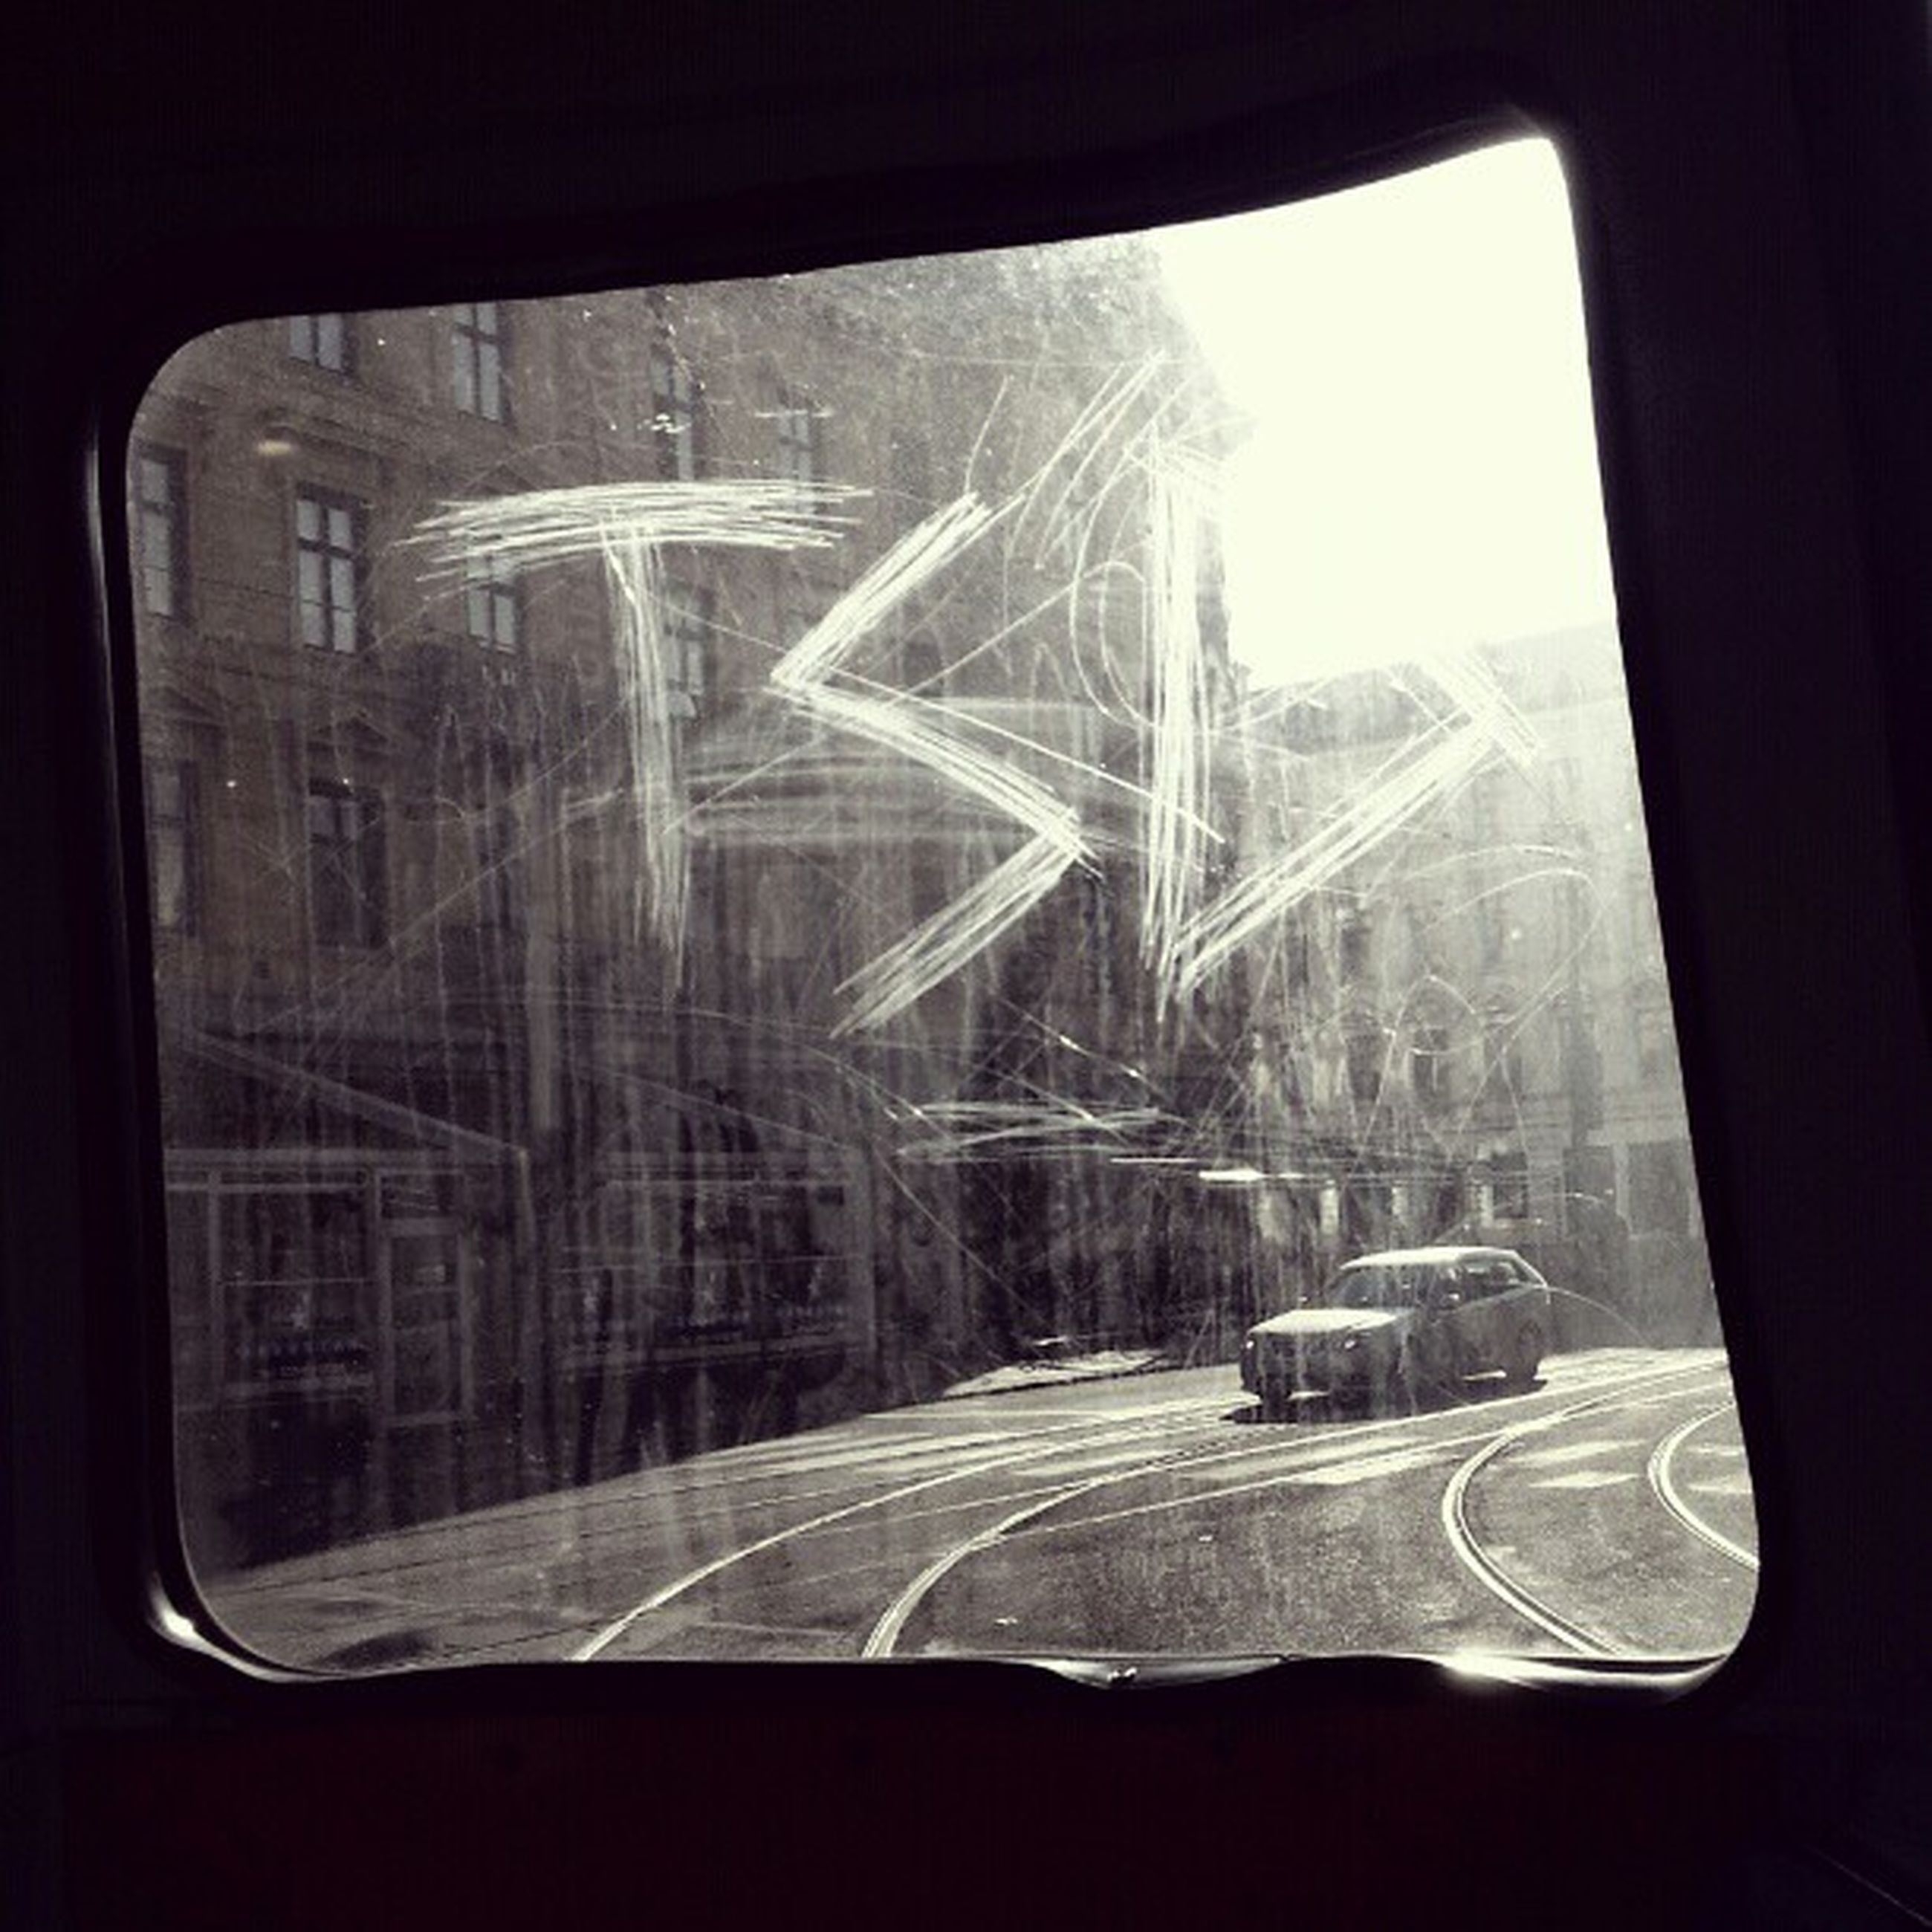 glass - material, window, transparent, transportation, vehicle interior, indoors, mode of transport, car, land vehicle, looking through window, glass, windshield, travel, reflection, car interior, public transportation, day, sunlight, sun, side-view mirror